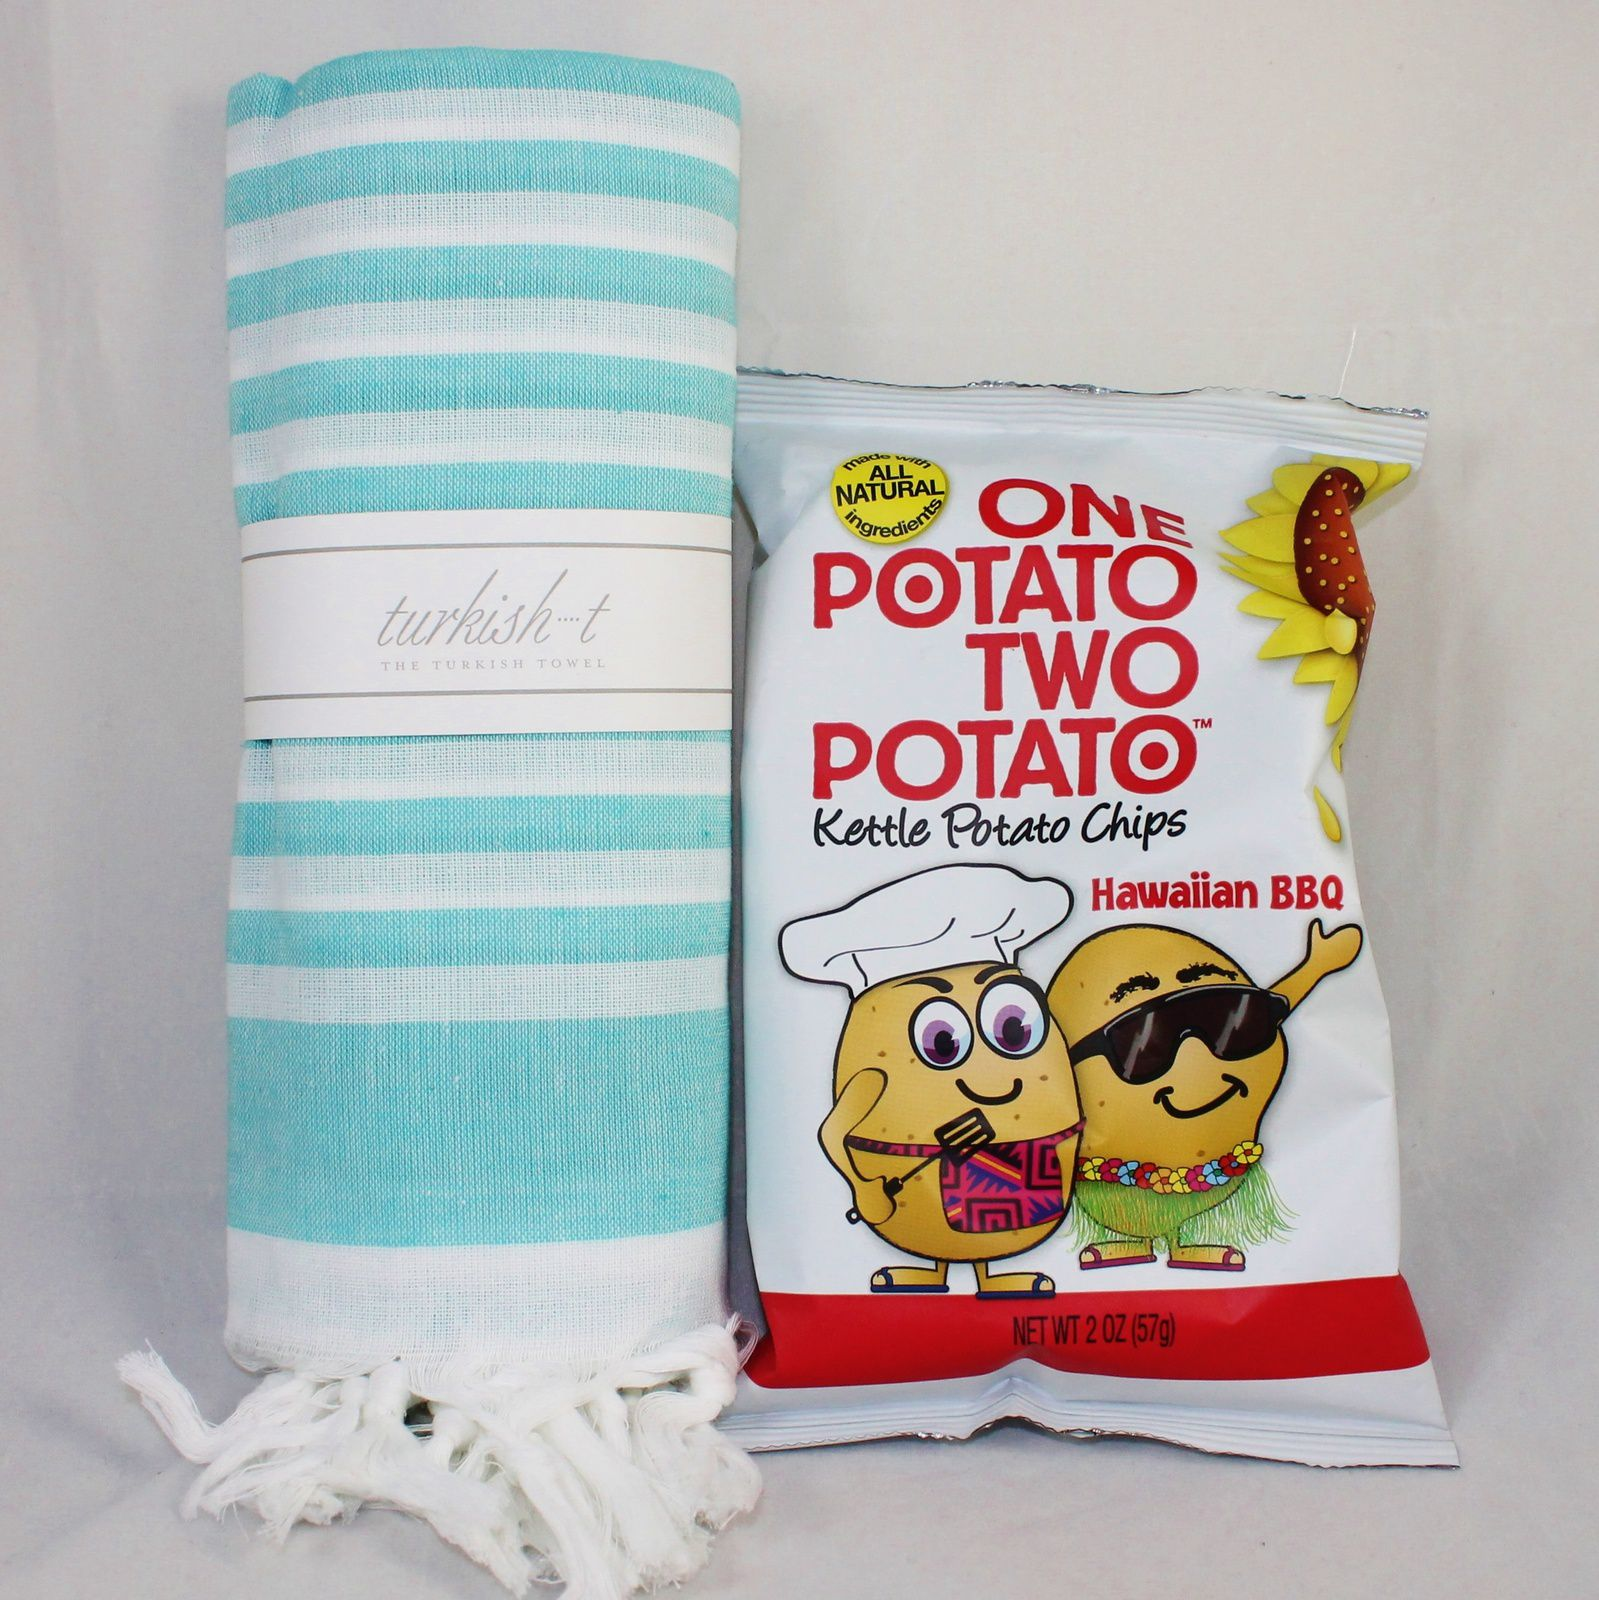 Turkish T Towel ($32) & One Potato Two Potato Kettle Chips ($1.50)